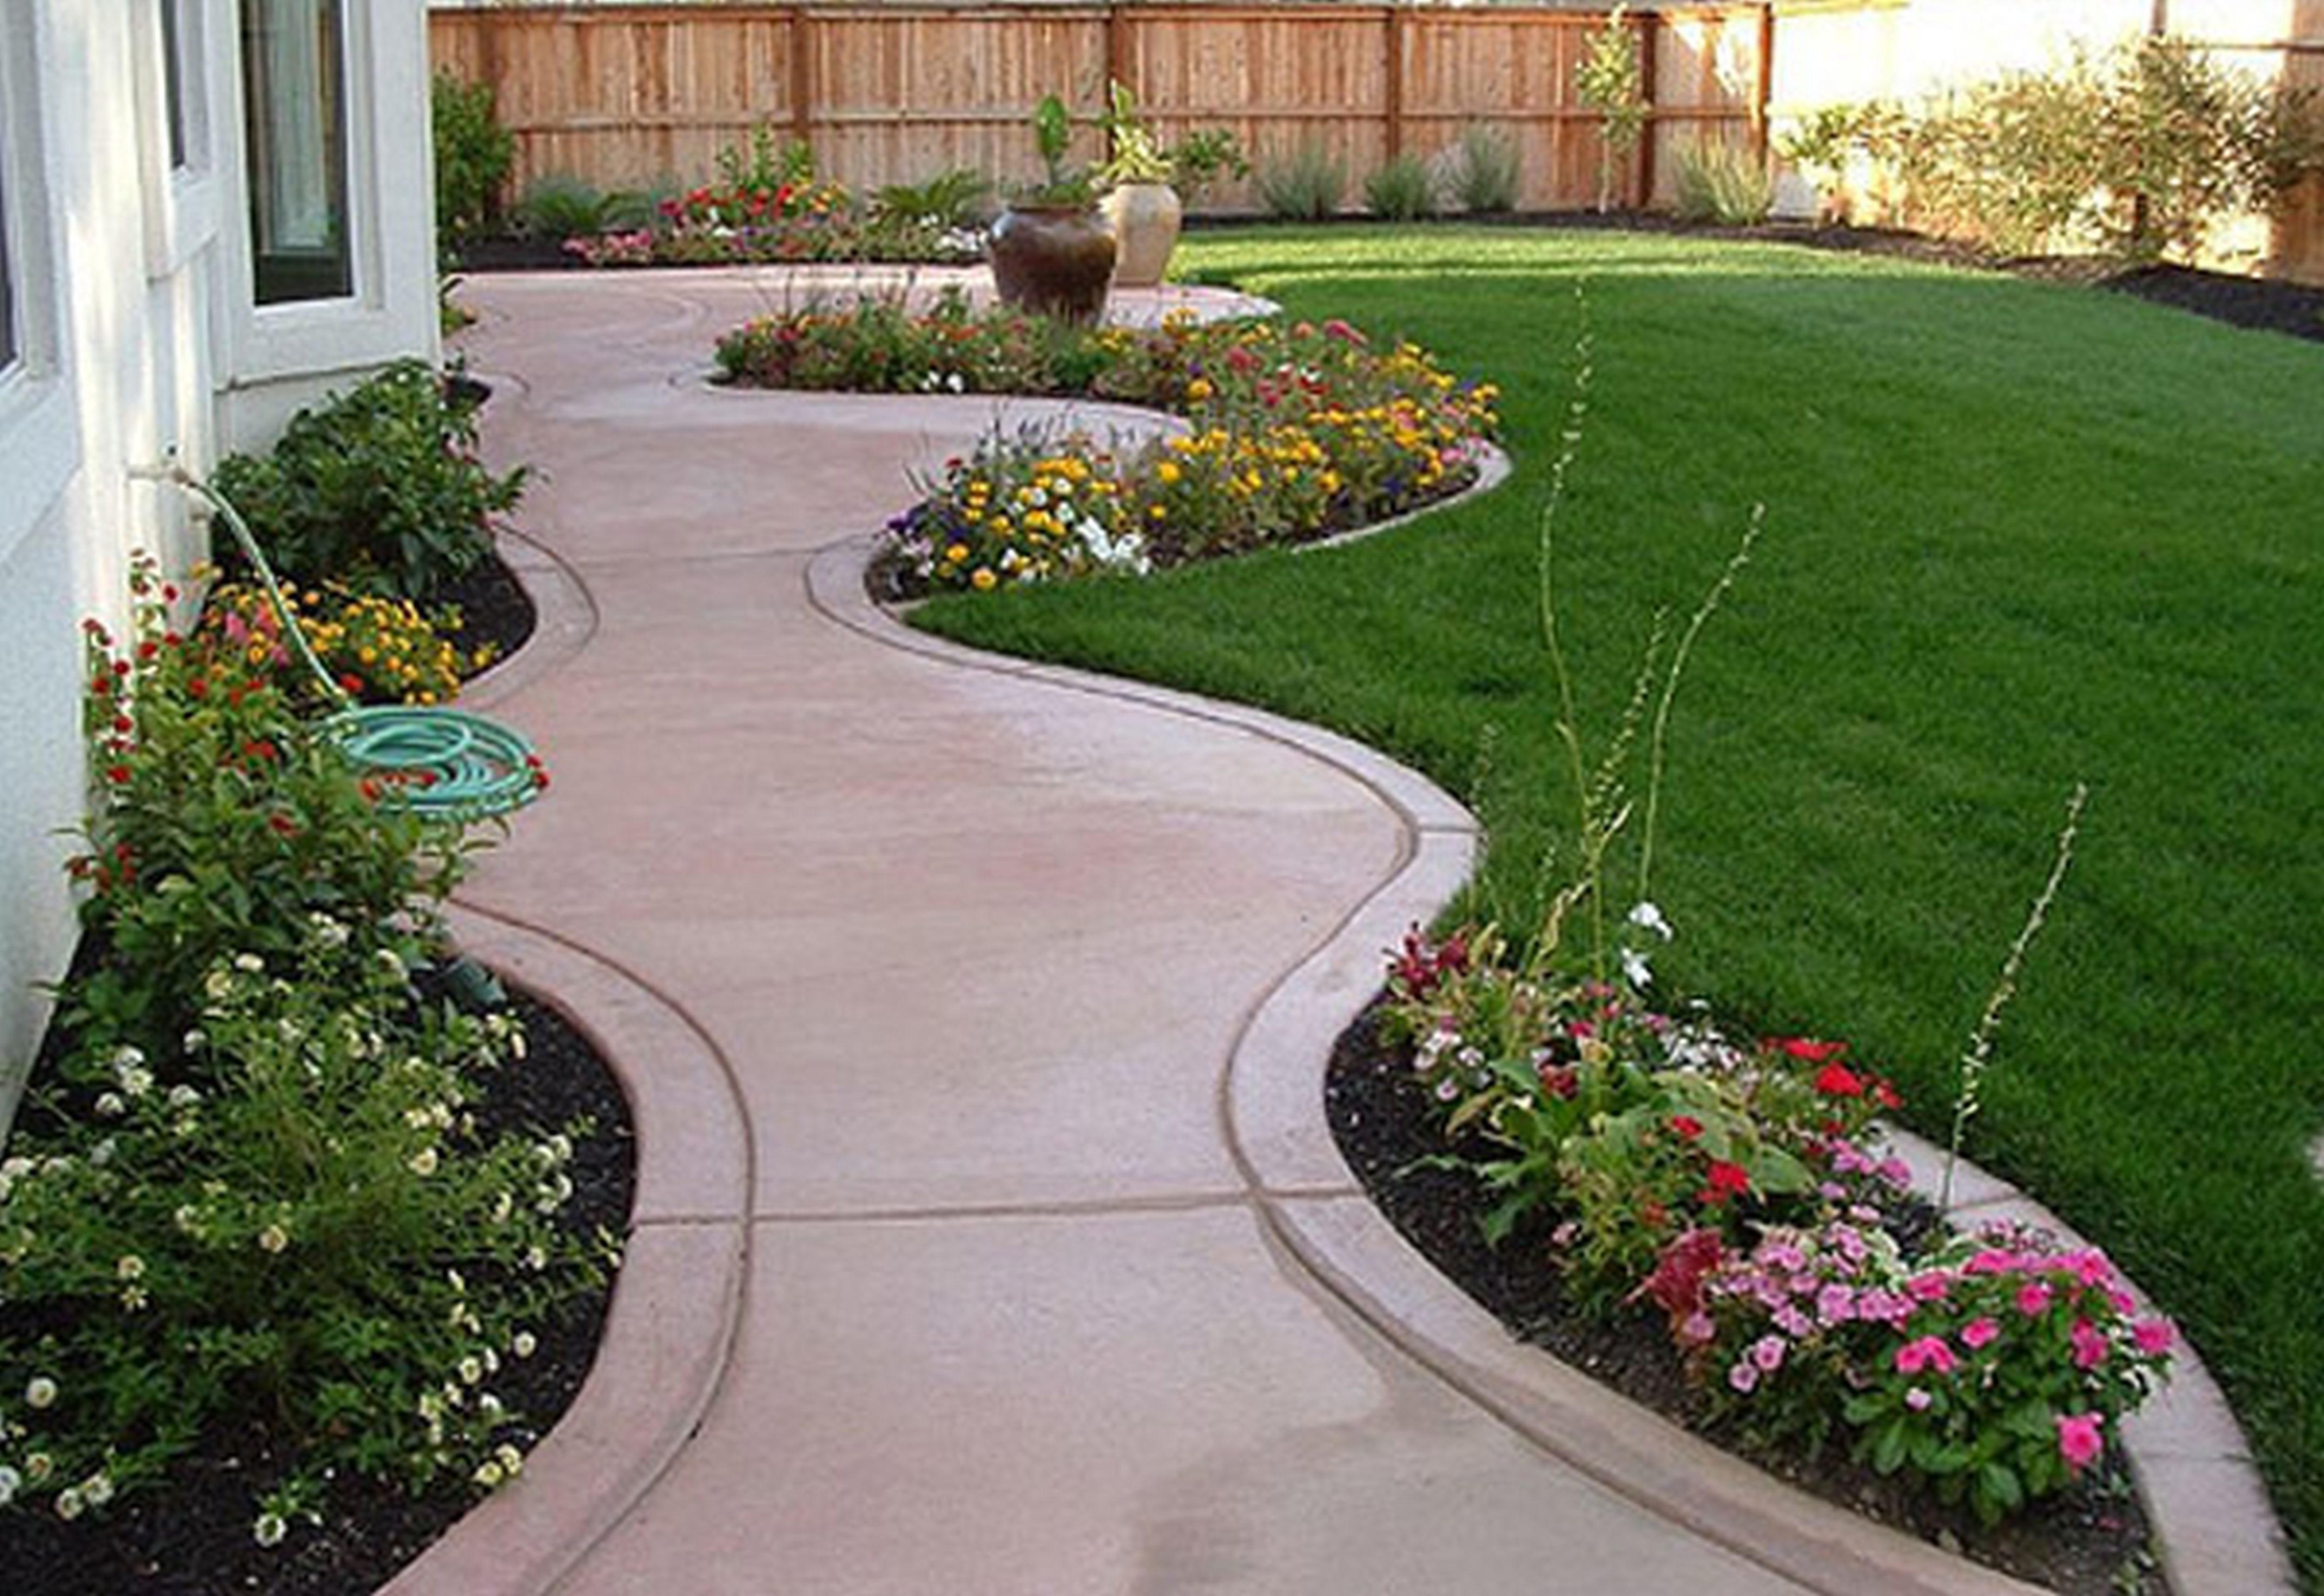 Landscape Design Backyard Exterior Gorgeous Landscaping Ideas For Backyard On A Budget  Landscaping Blog . Design Ideas